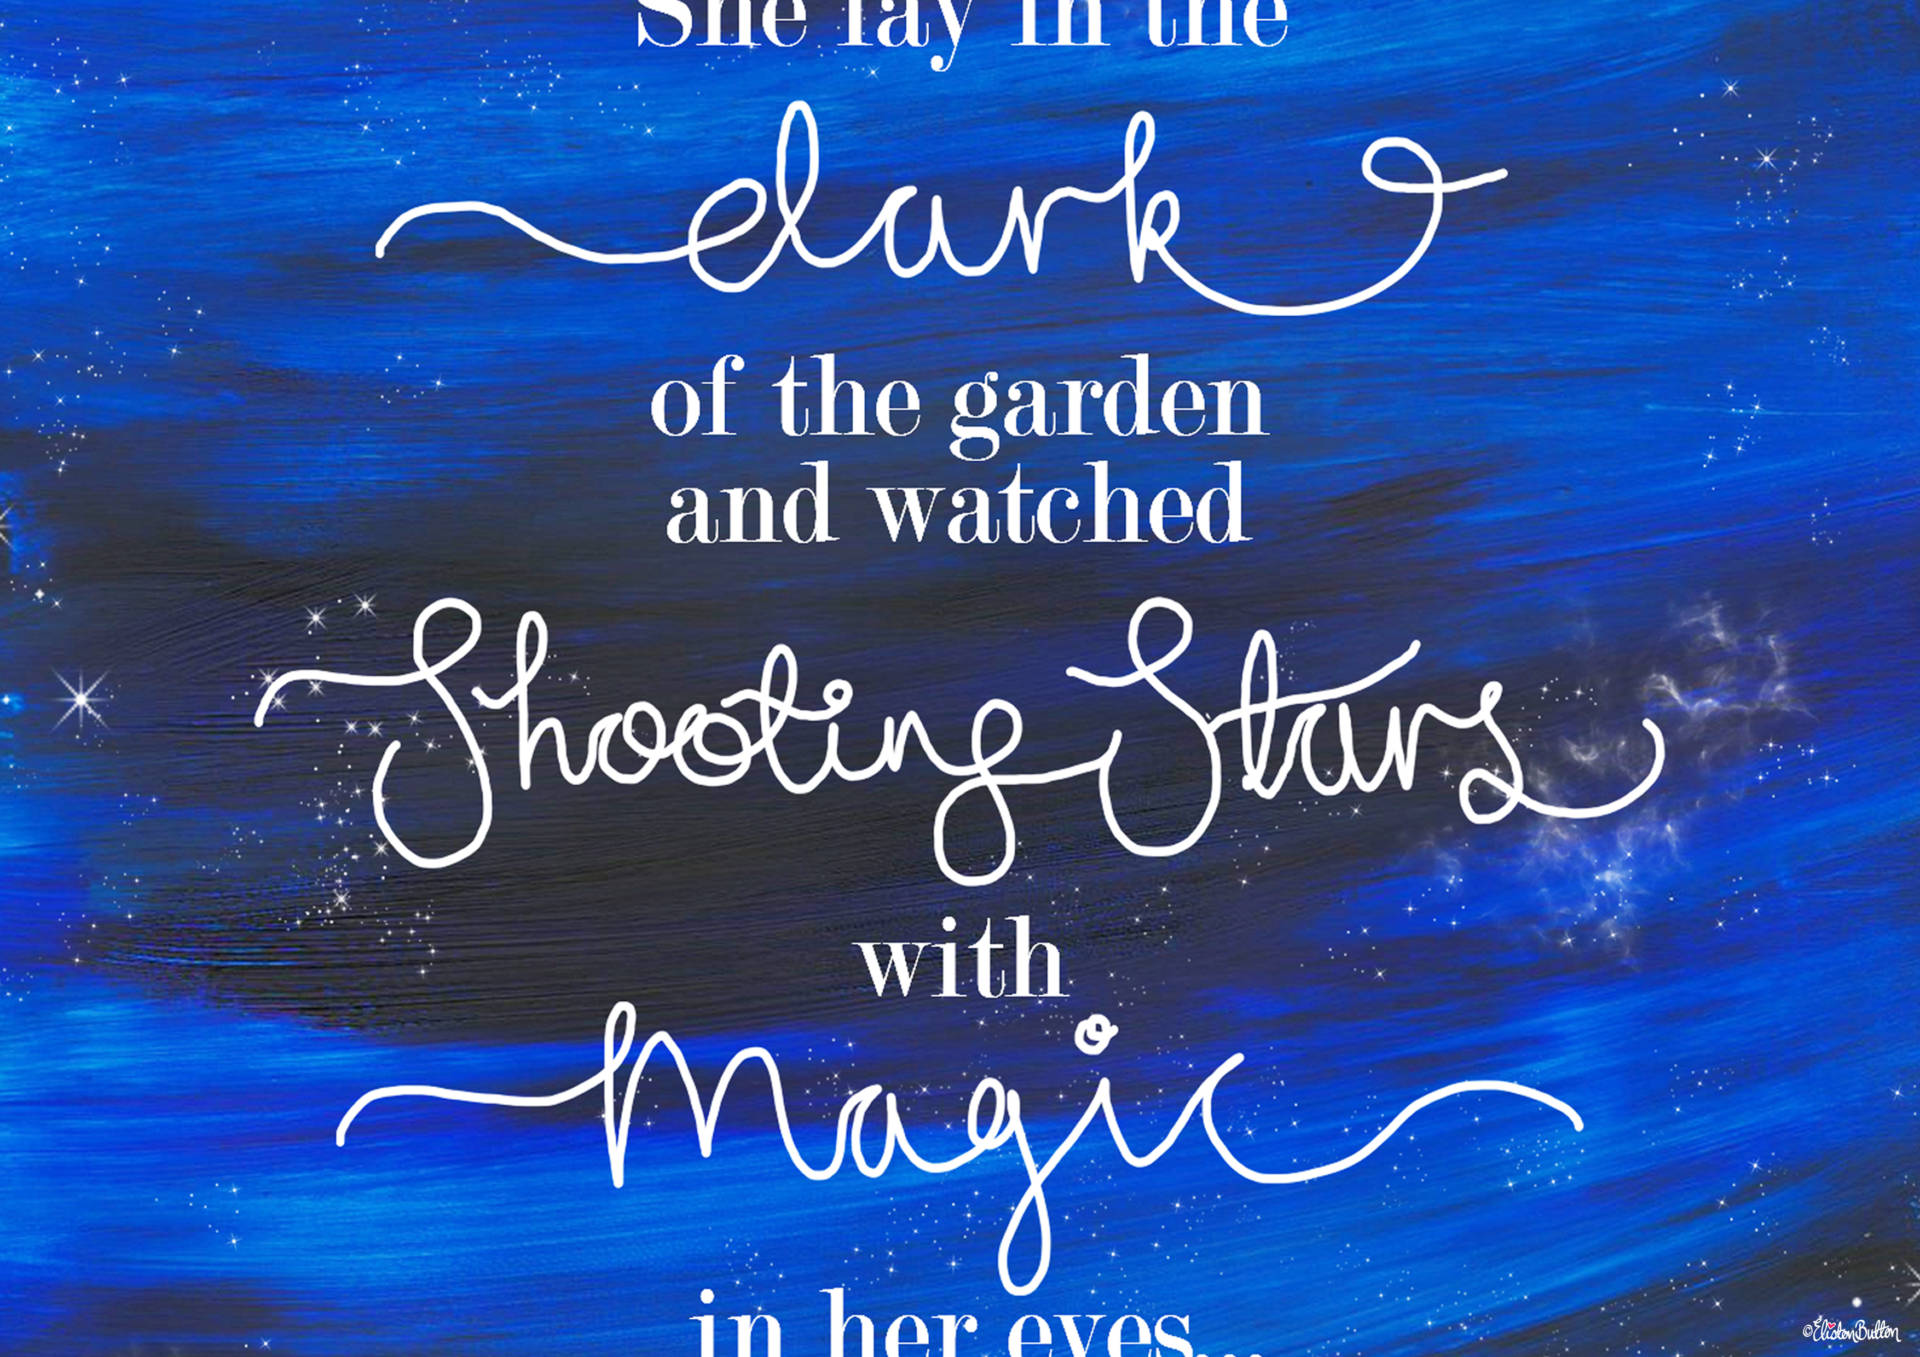 Shooting Star Magic Quote Print with Painted Night Sky Background by Eliston Button - Middle Section - Create 30 - No. 23 - Shooting Star Quote Print at www.elistonbutton.com - Eliston Button - That Crafty Kid – Art, Design, Craft & Adventure.